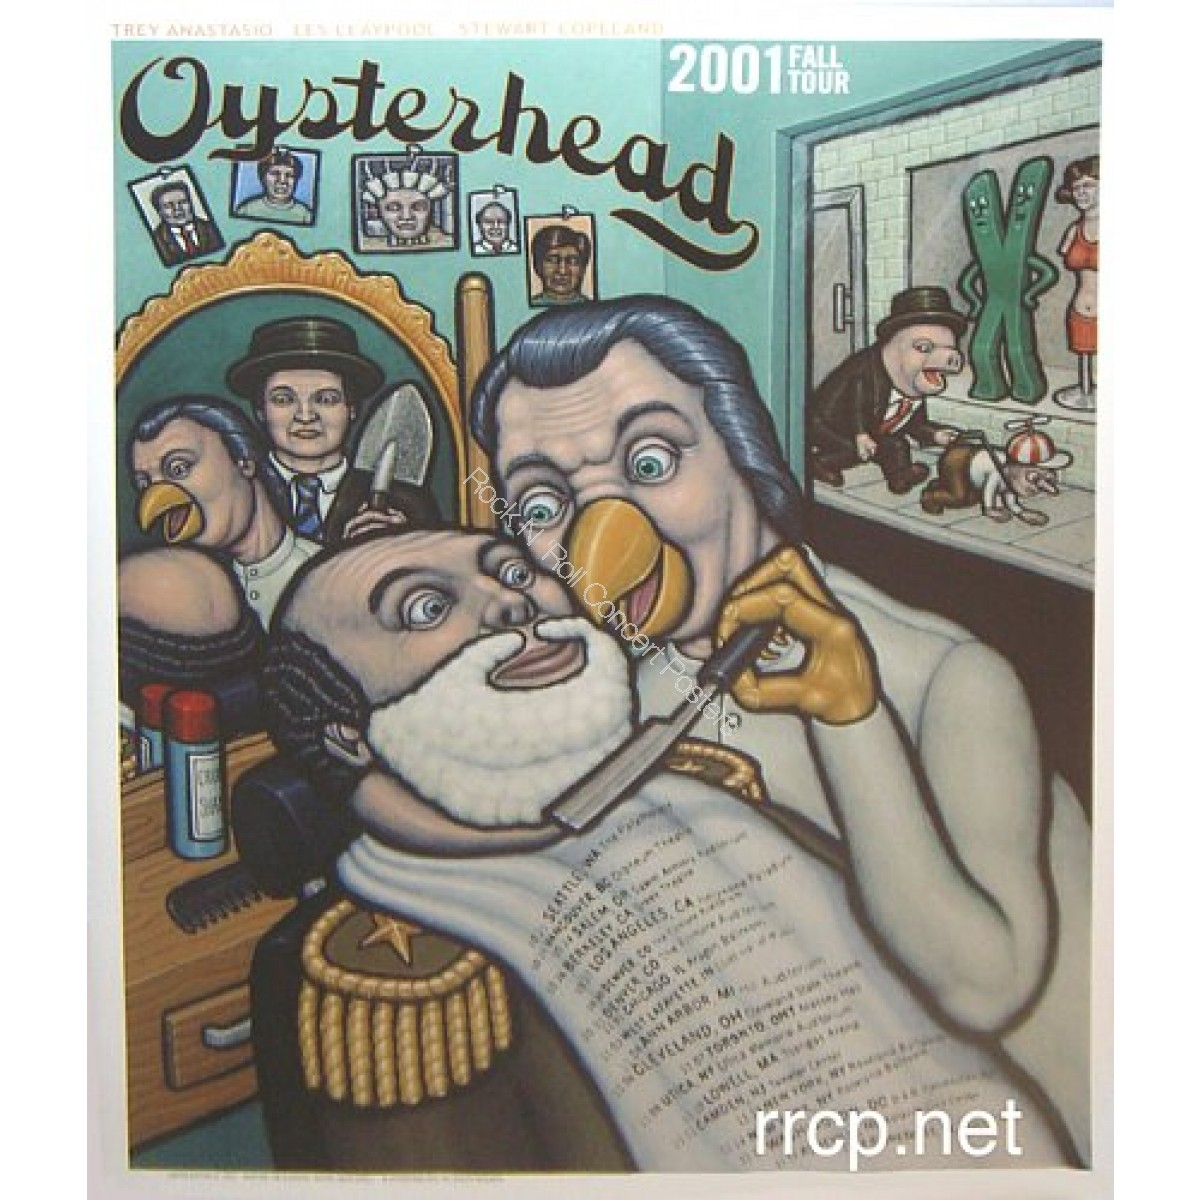 Oysterhead Fall Tour 2001 Official Concert Poster 1st Edition Print